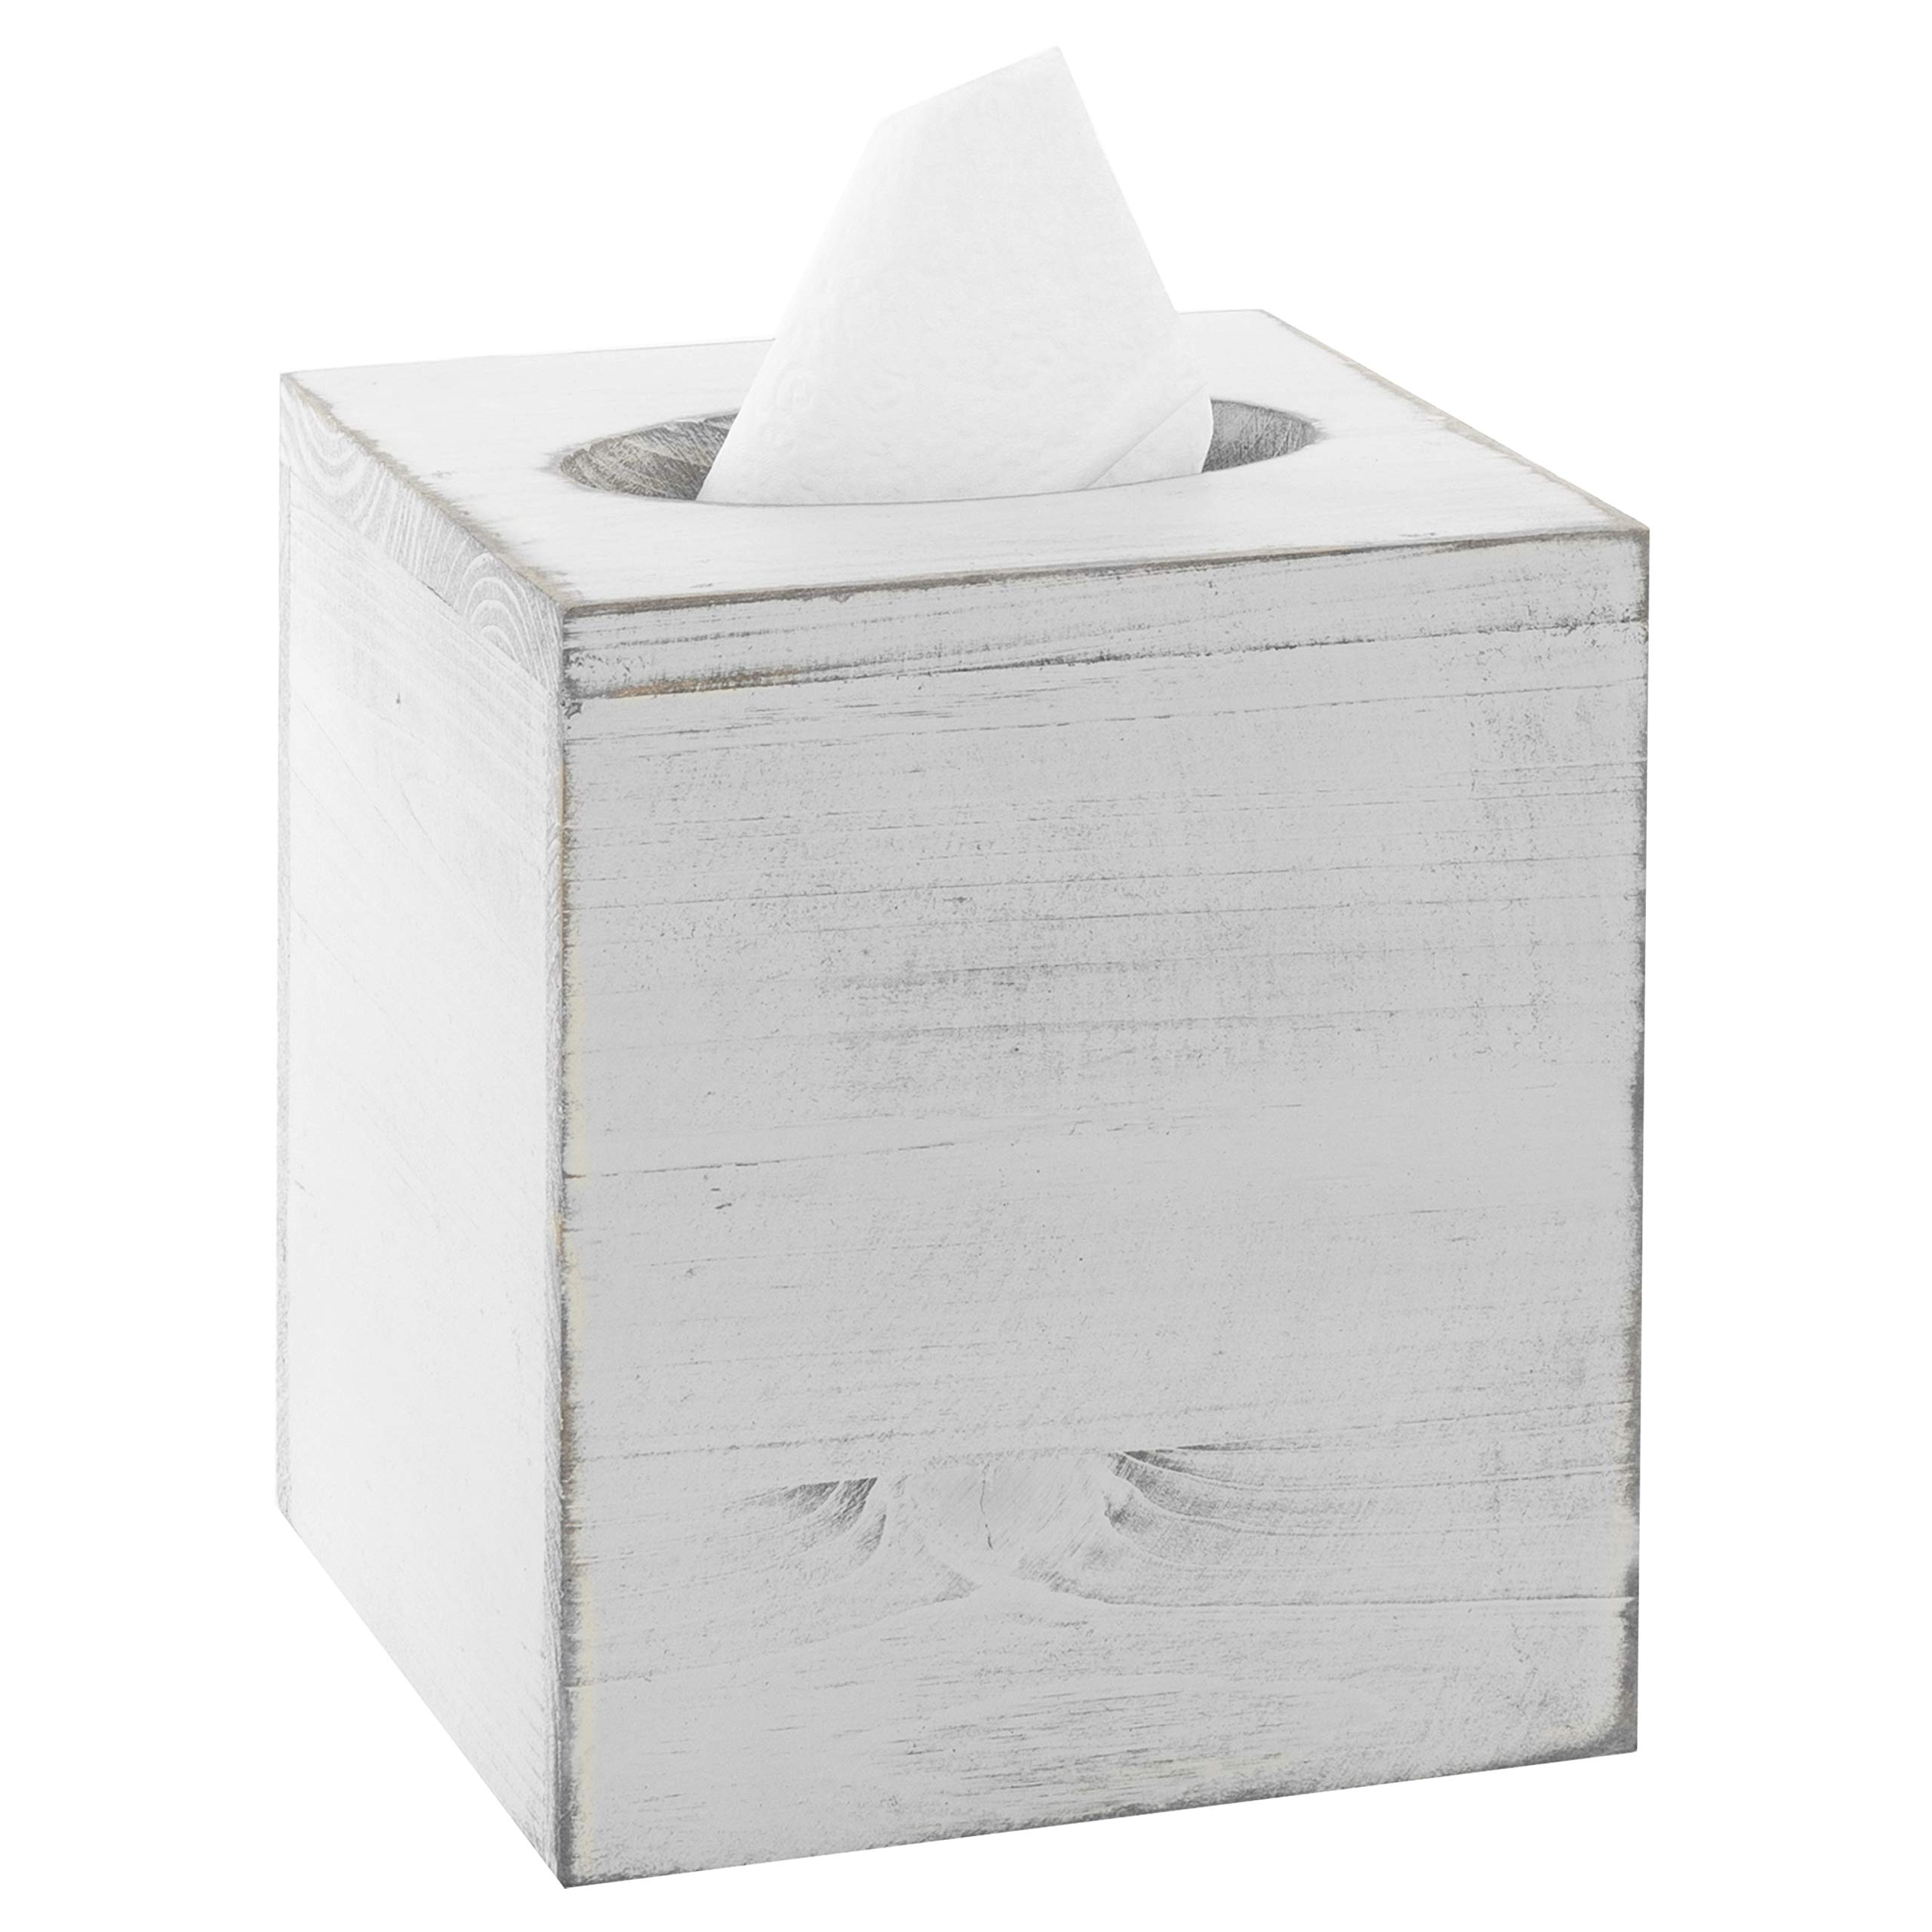 MyGift Vintage White Wood Square Tissue Box Cover by MyGift